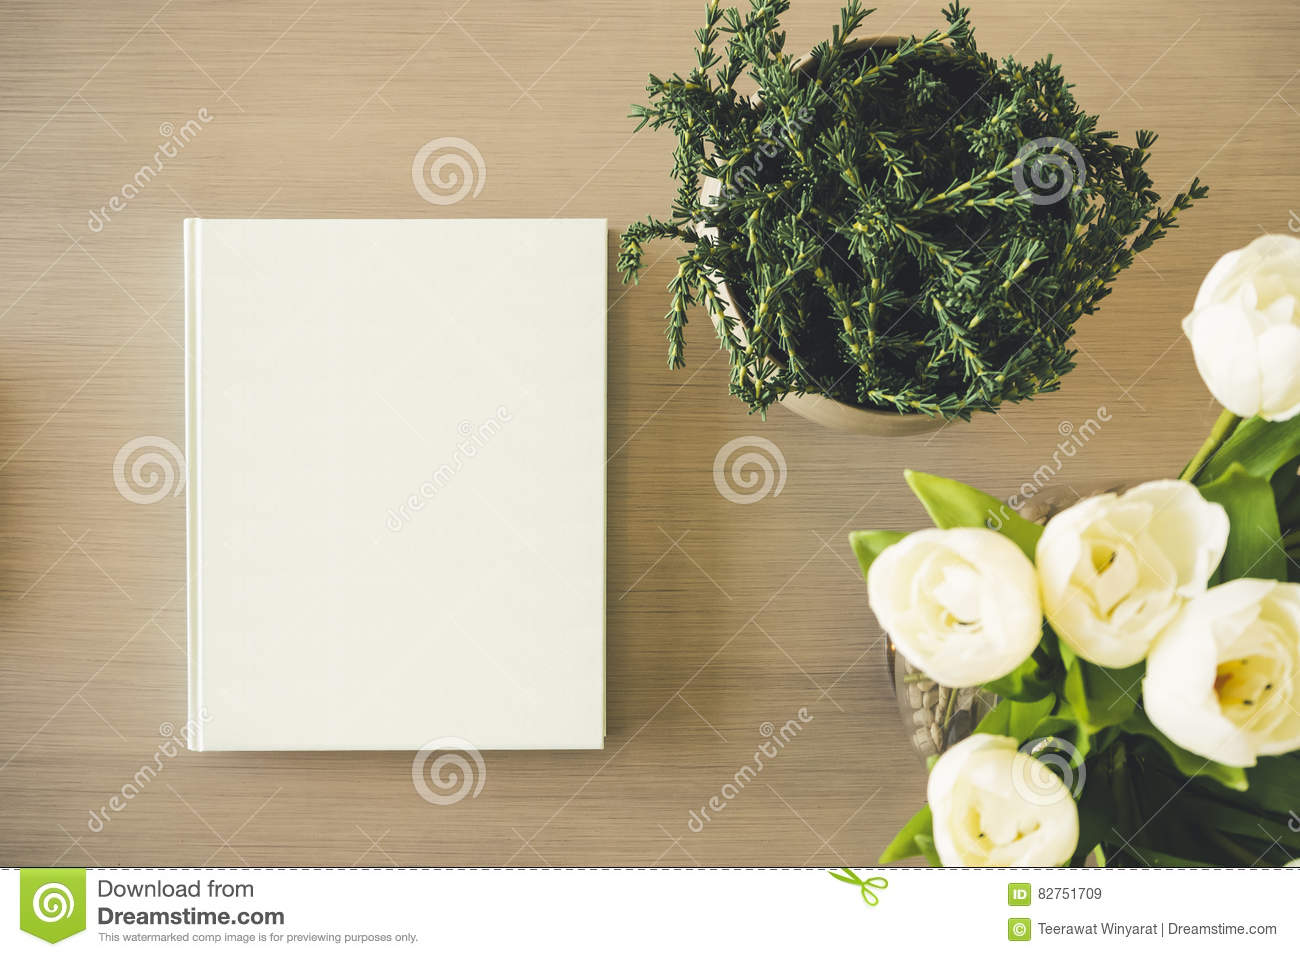 Book Cover Flower : Mock up book cover on table with plant white flower stock